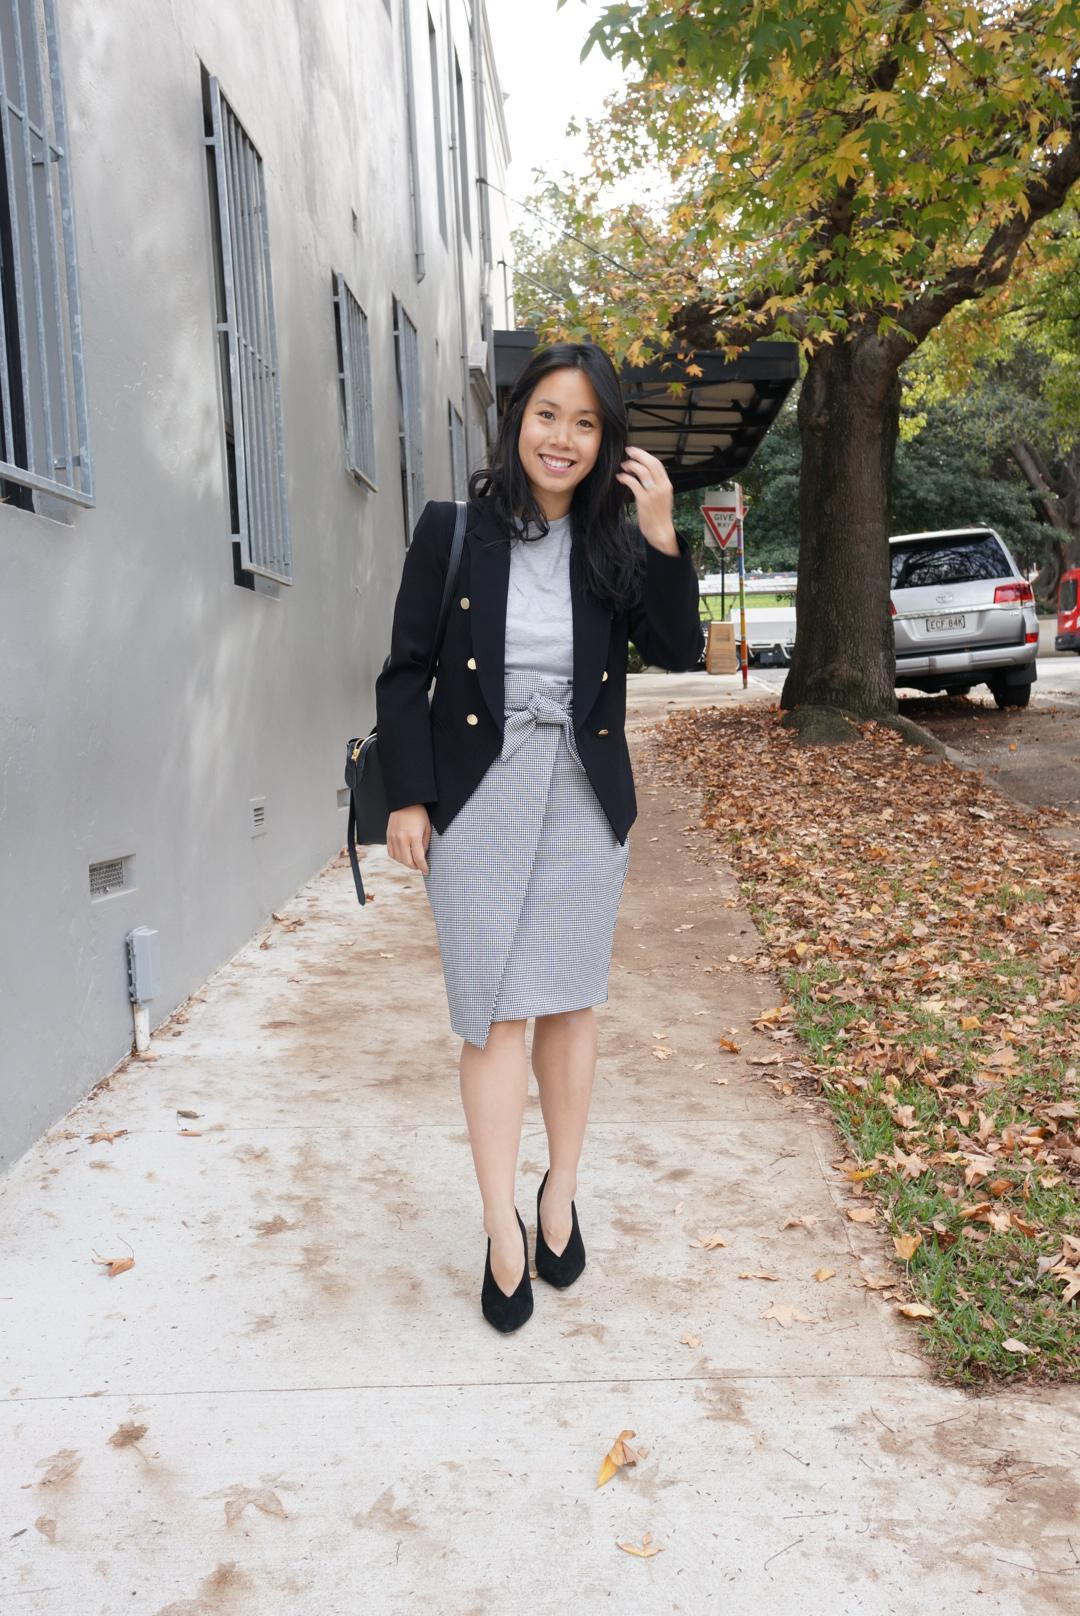 woman in job interview outfit